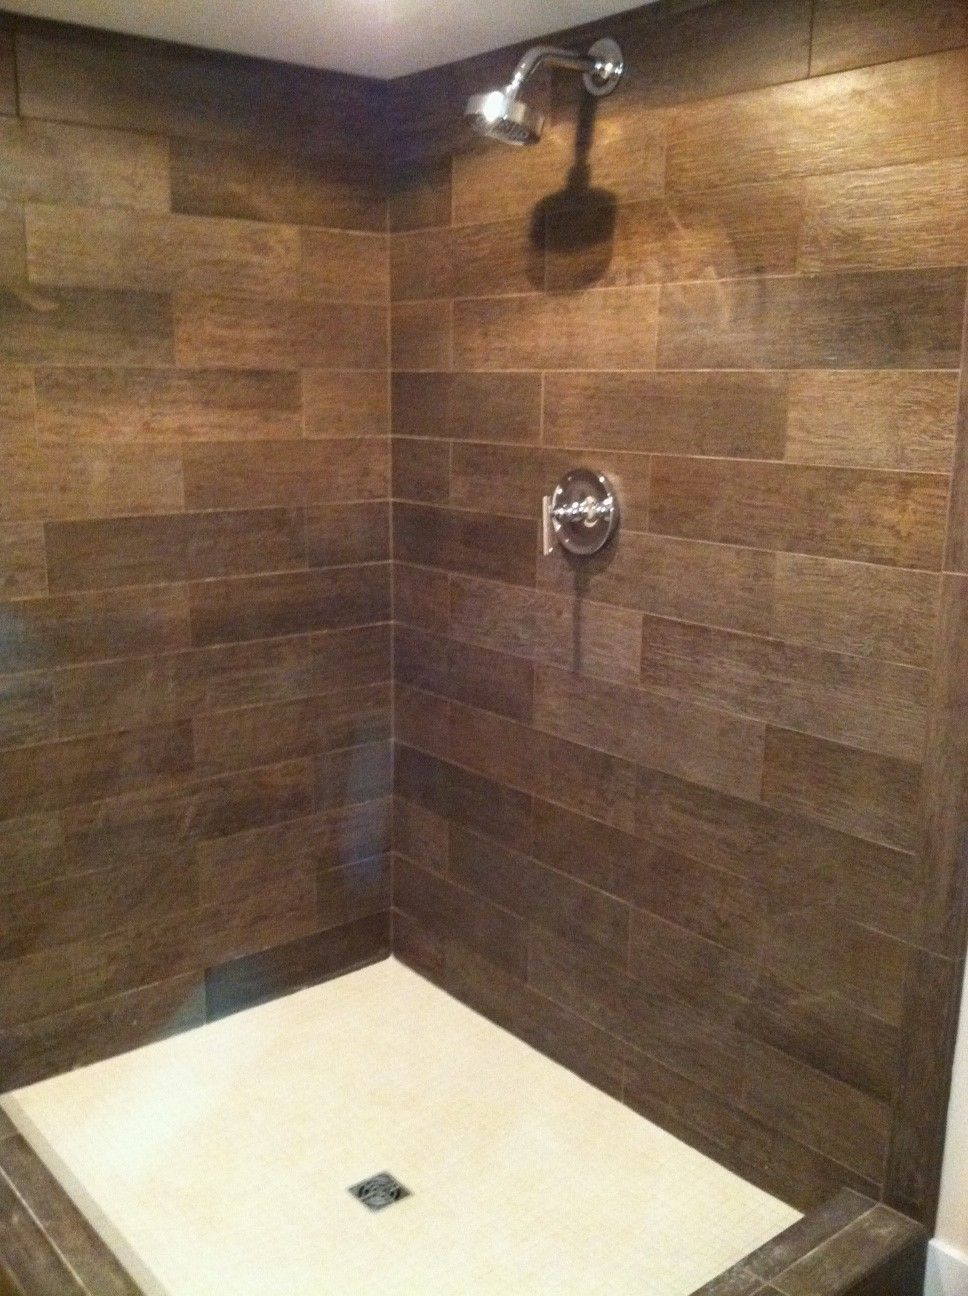 a lower level shower can have a warm welcoming feel when